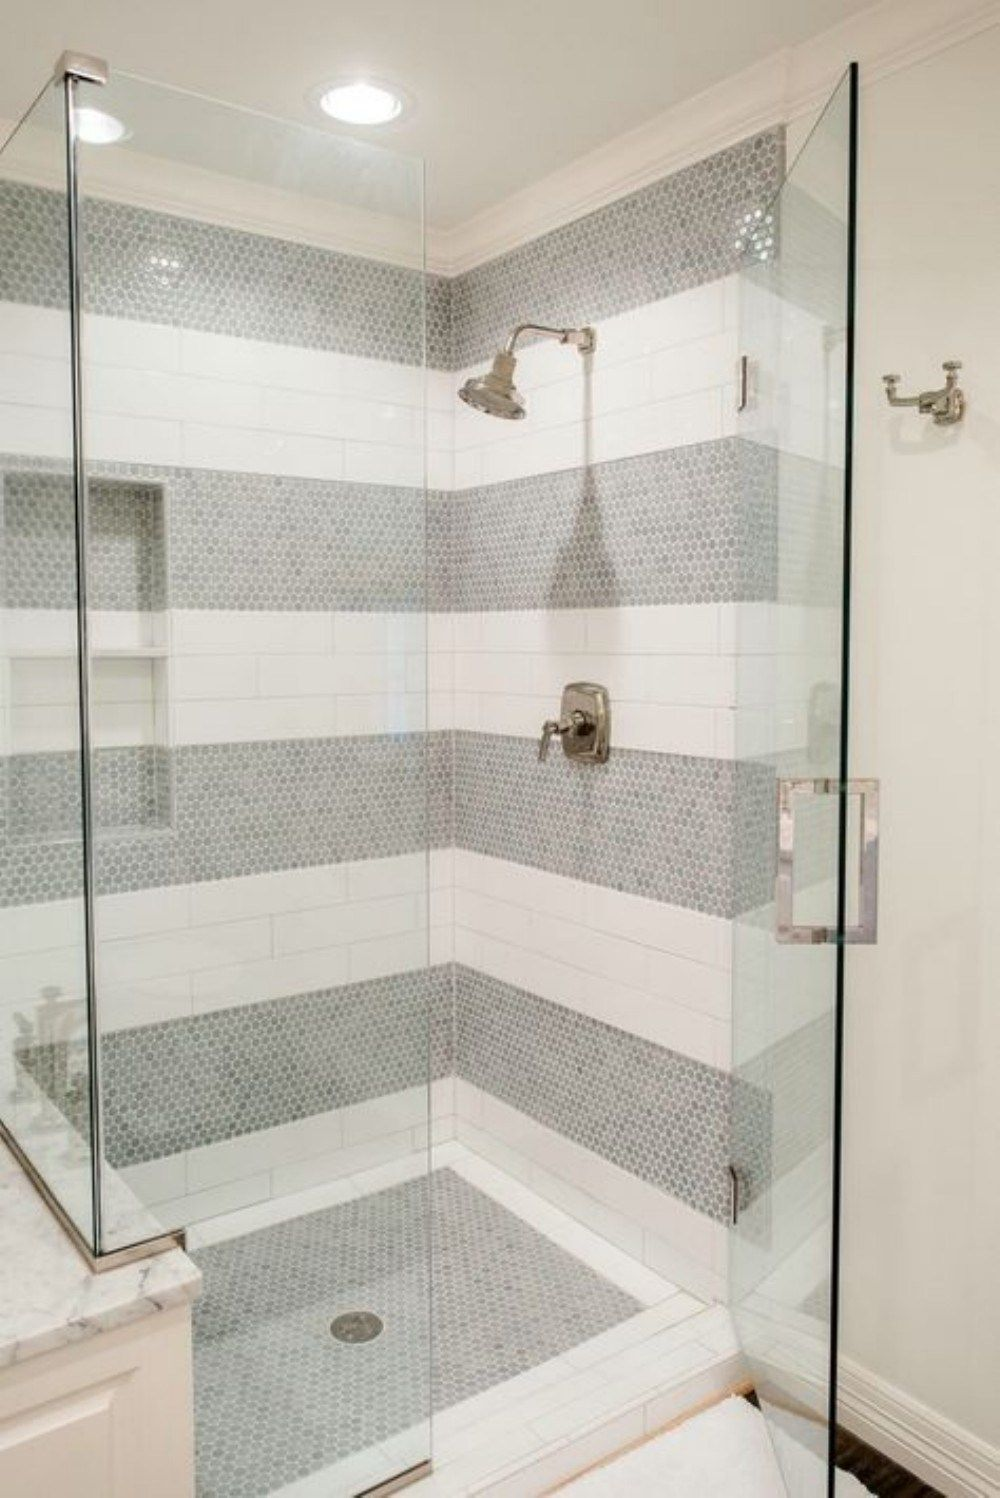 Clever master bathroom remodelling ideas on a budget (1) | kids ...